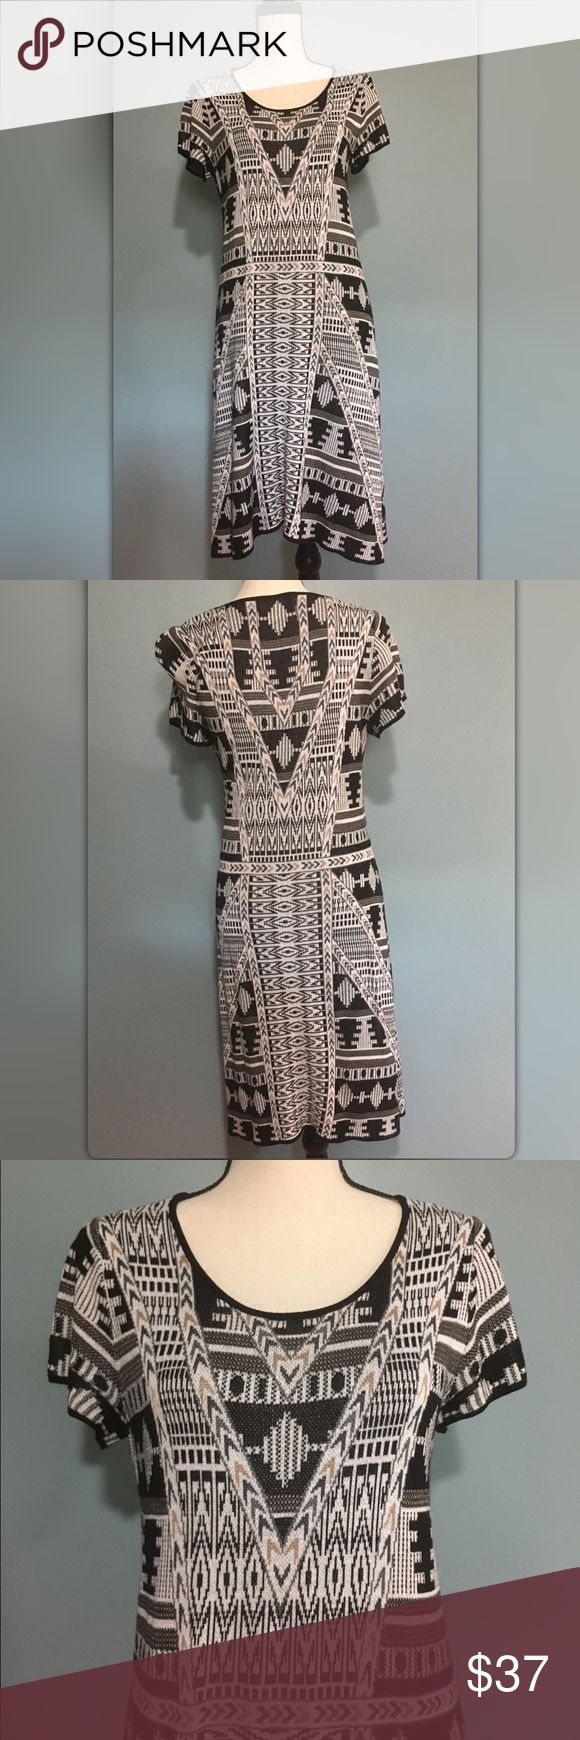 """Cynthia Rowley 'Aztec' Short Sleeve Knit Dress  Lg Cynthia Rowley 'Aztec' Short Sleeve Knit Dress sz Large   Originally $130.00 Great, pre-loved condition. Aztec print has brown, black, white and rose gold colors. See pic of closet up for more details on colors within print.  70% rayon, 30% cotton. Approx. 34"""" bust Approx. 40"""" length while on mannequin. Cynthia Rowley Dresses"""